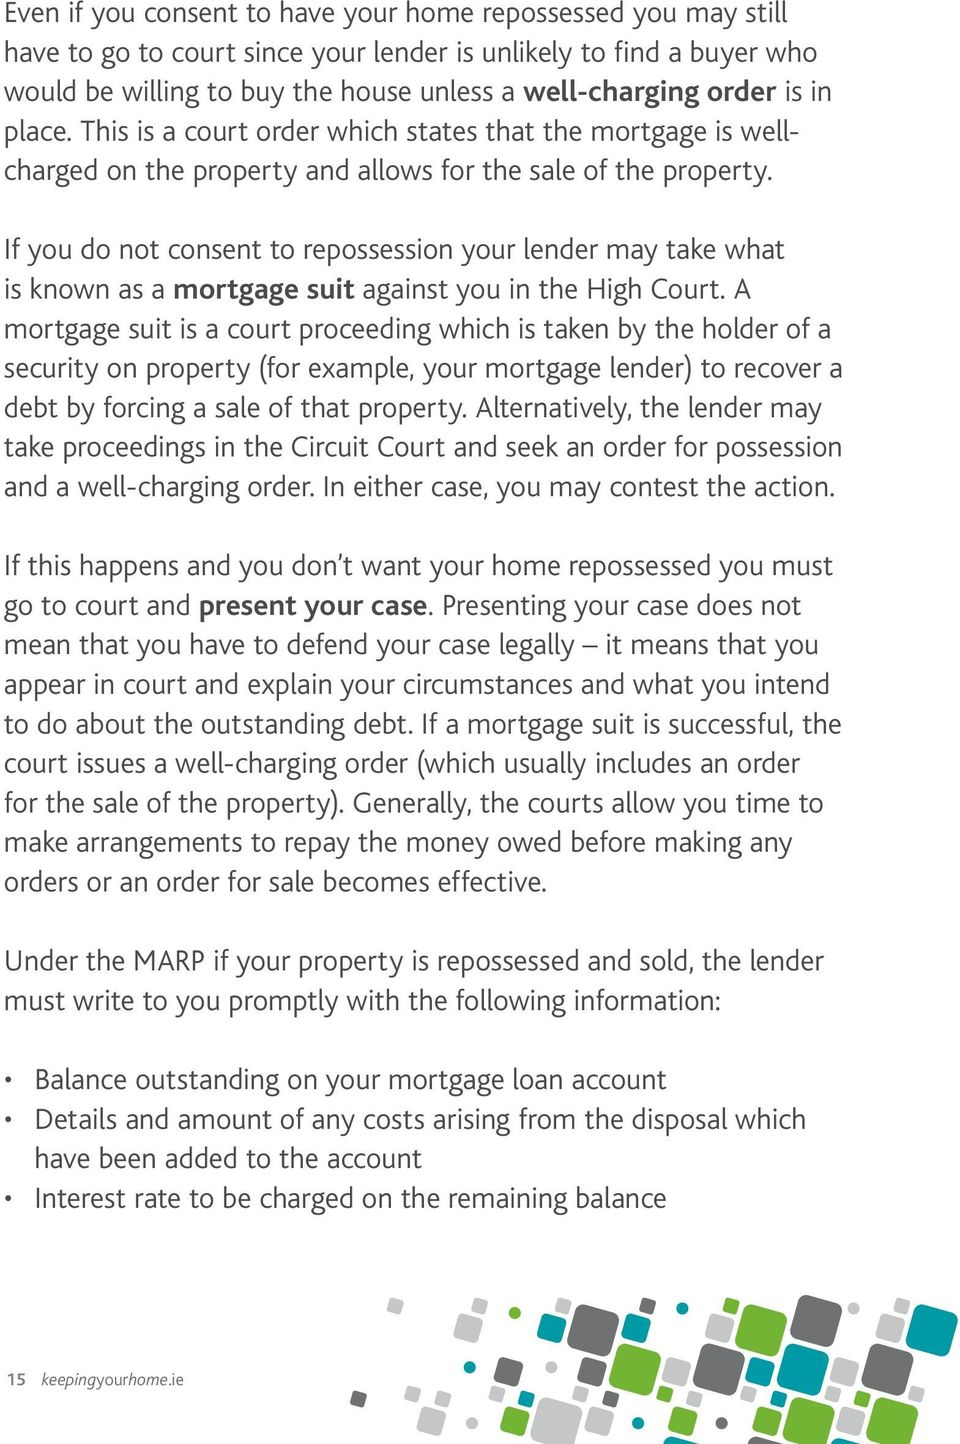 If you do not consent to repossession your lender may take what is known as a mortgage suit against you in the High Court.